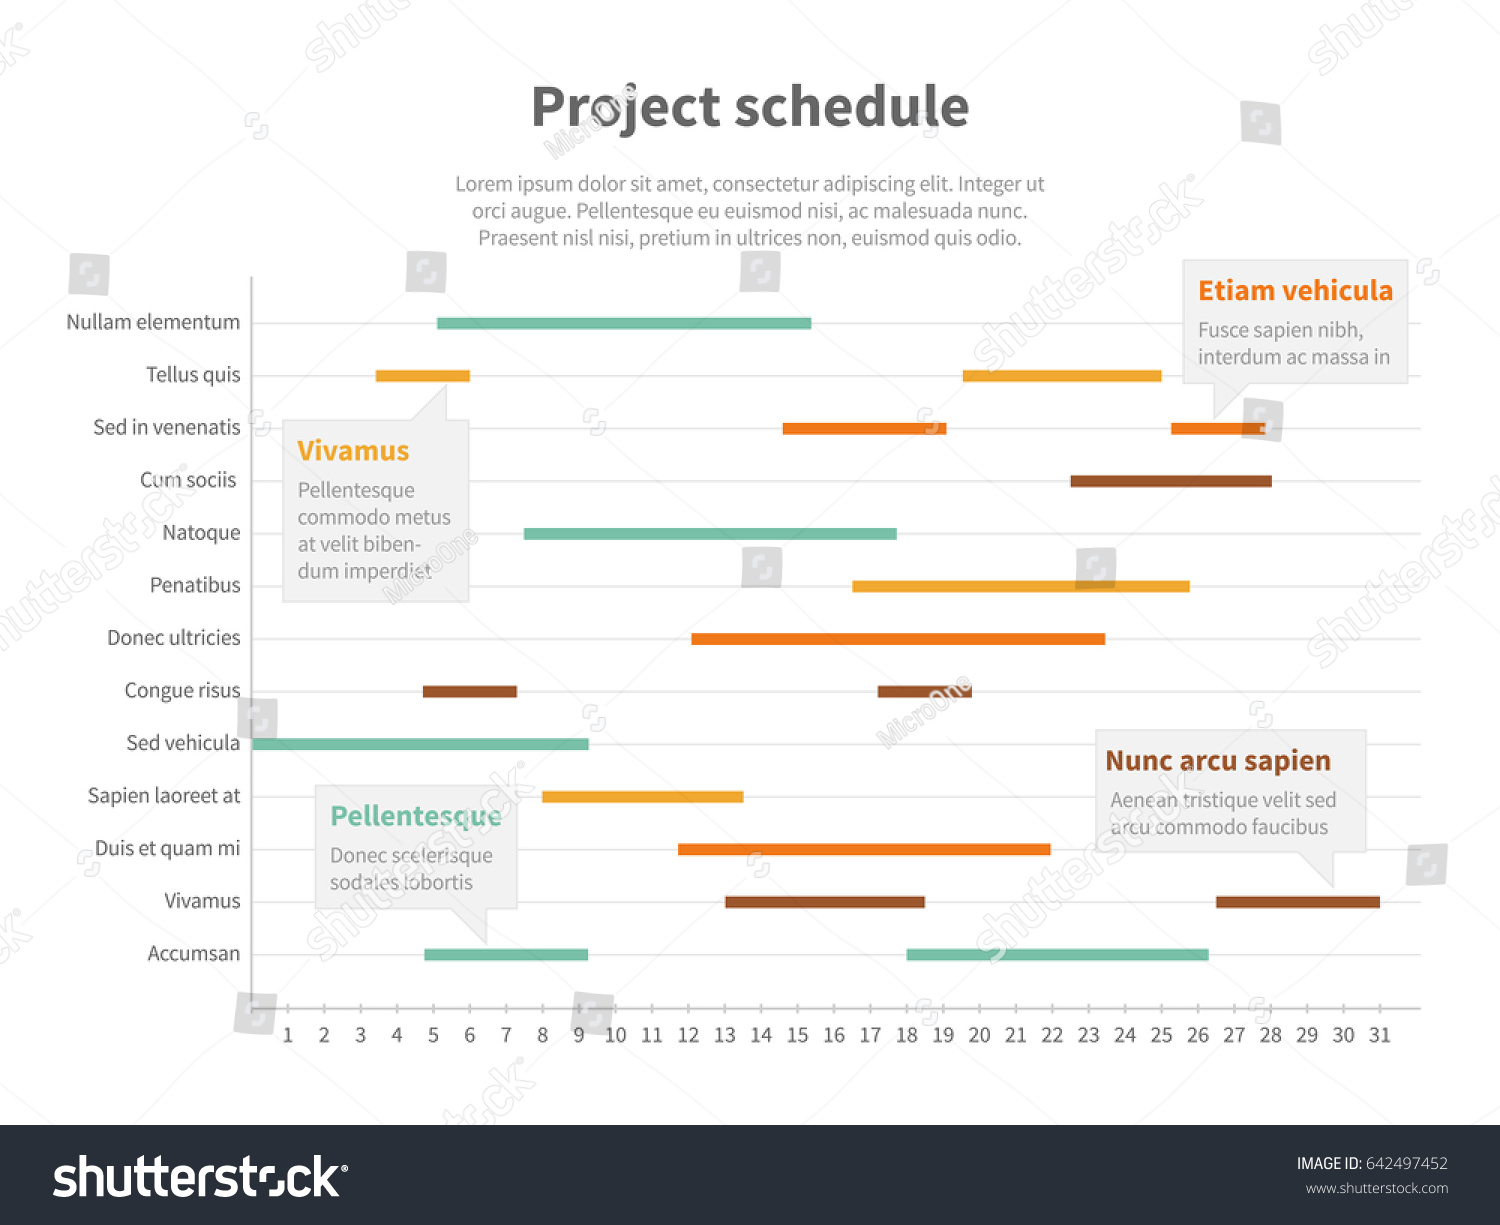 Project plan schedule chart timeline gantt stock illustration project plan schedule chart with timeline gantt progress graph infographic project timeline for business geenschuldenfo Image collections